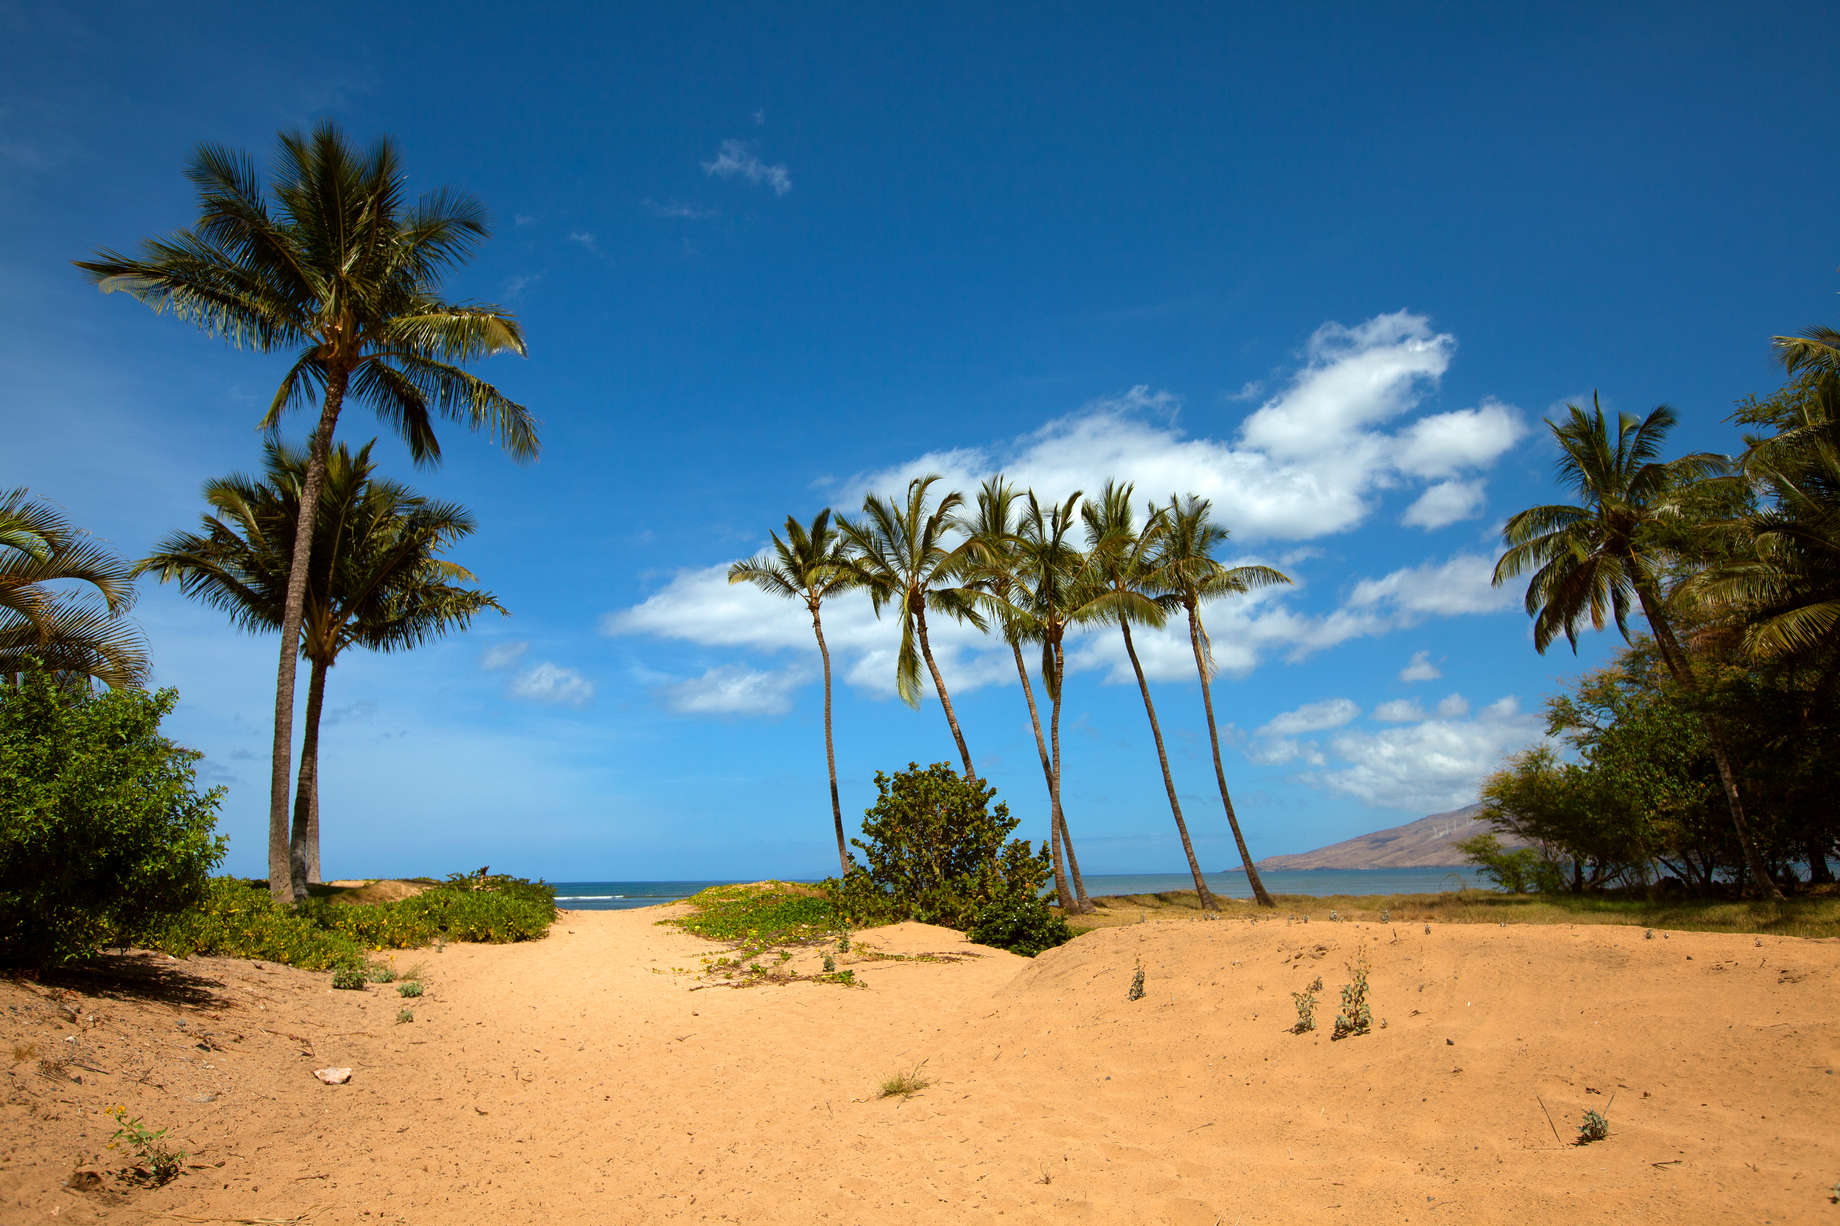 Best Beaches in Hawaii: Most Beautiful and Scenic Beaches to